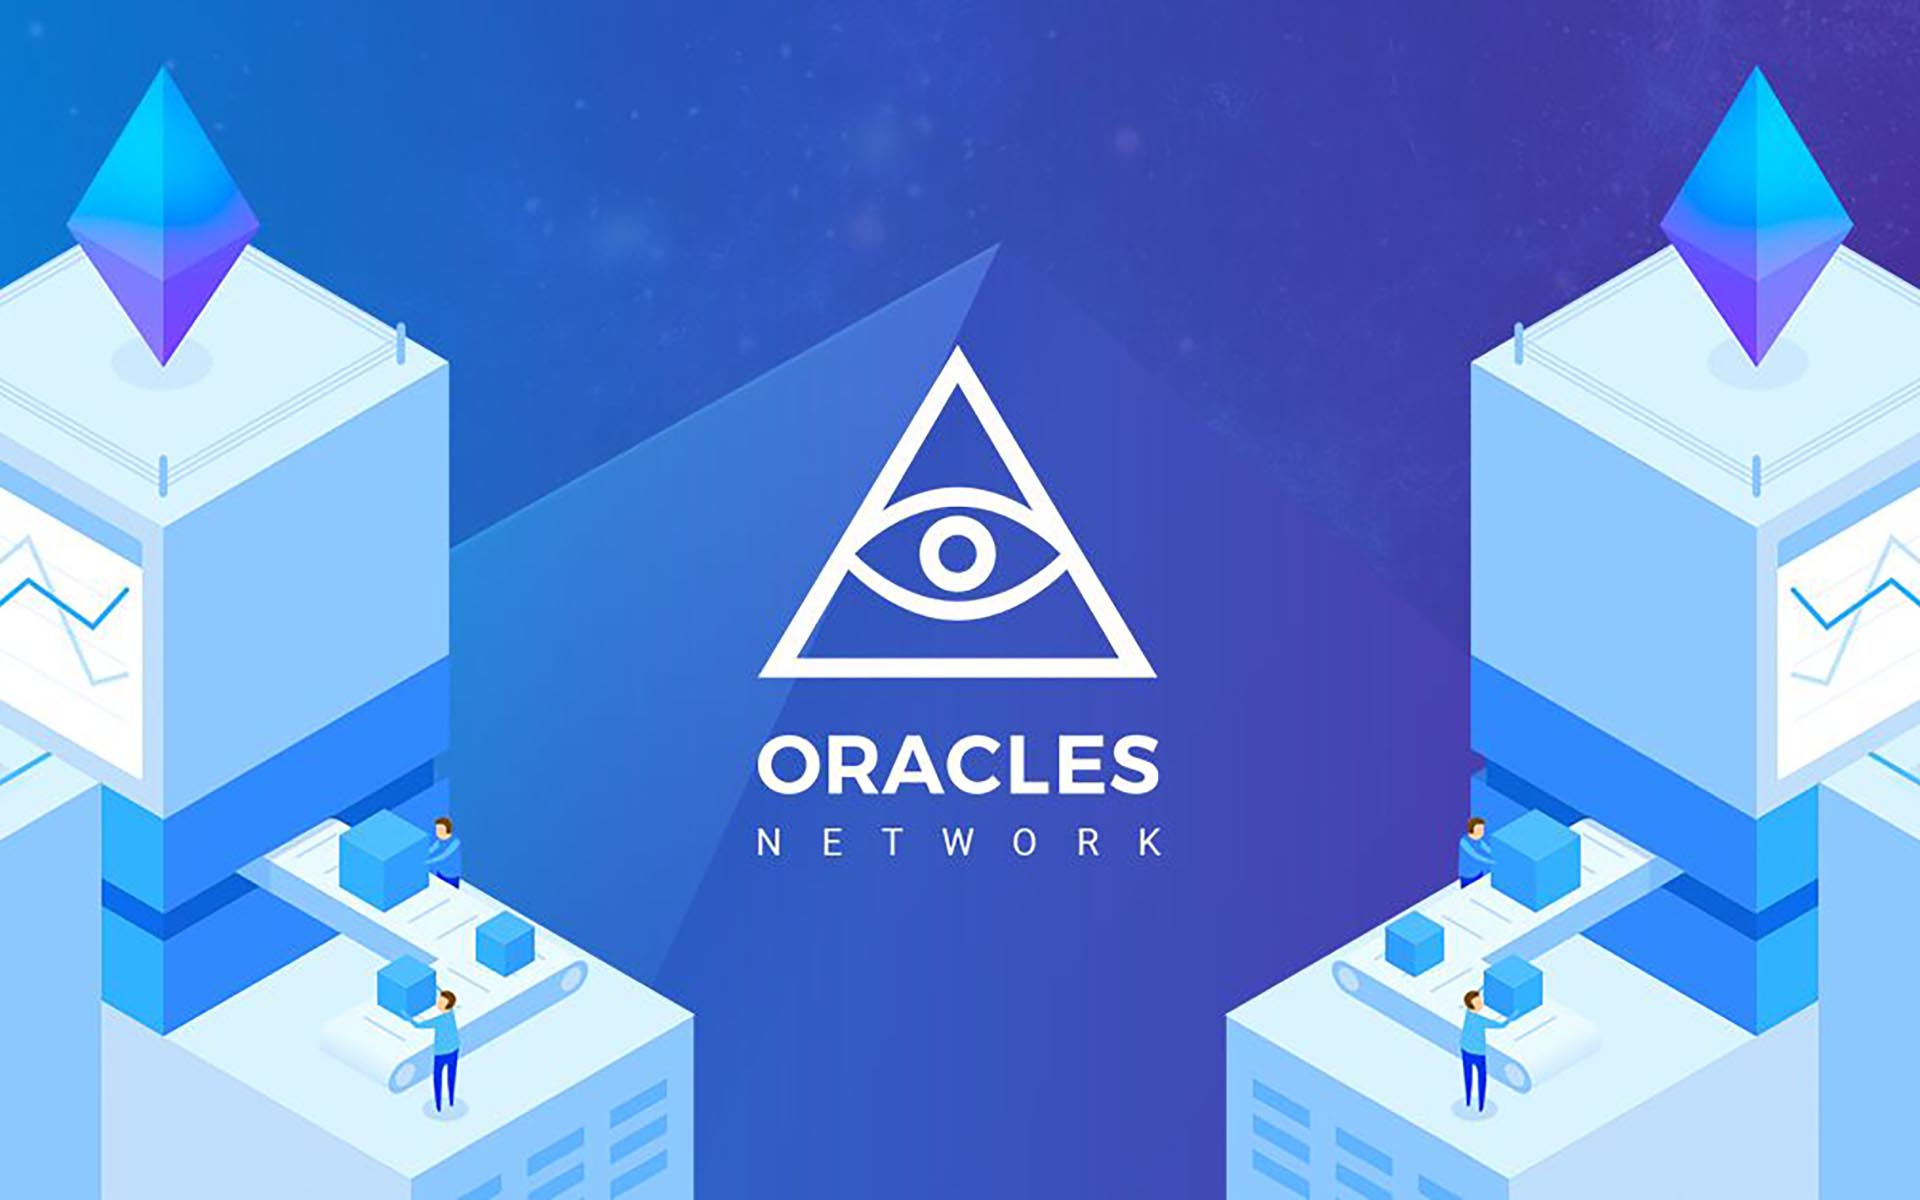 Oracles Network Introduces First Scalable Public Blockchain with Proof-of-Authority Consensus; Announces $25M Initial Coin Offering Starting in Q4